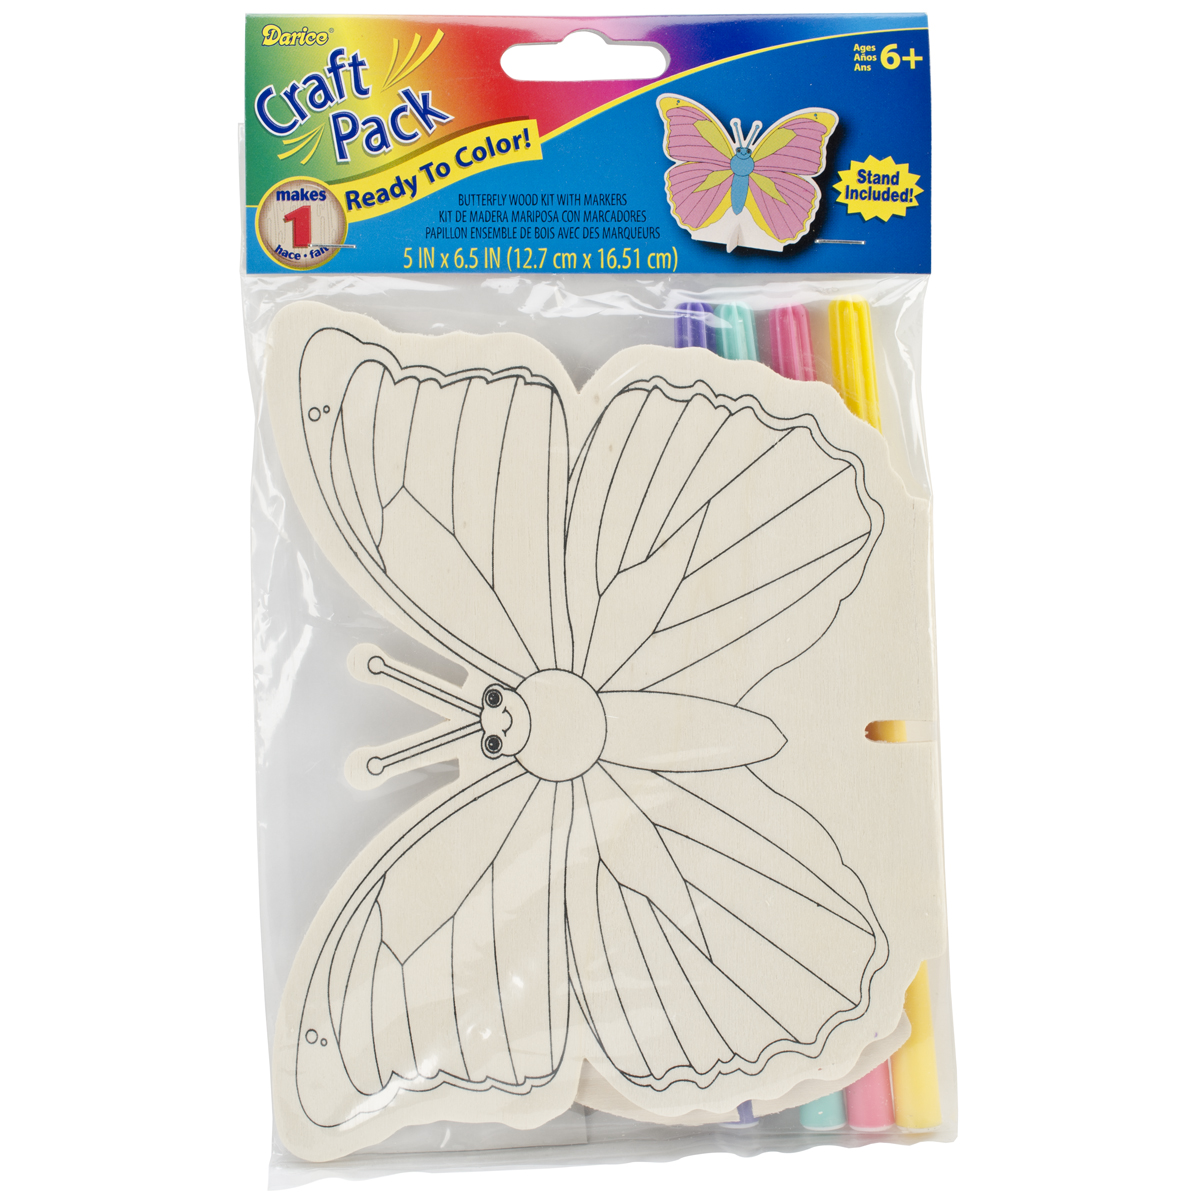 Wood Craft Pack-Butterfly